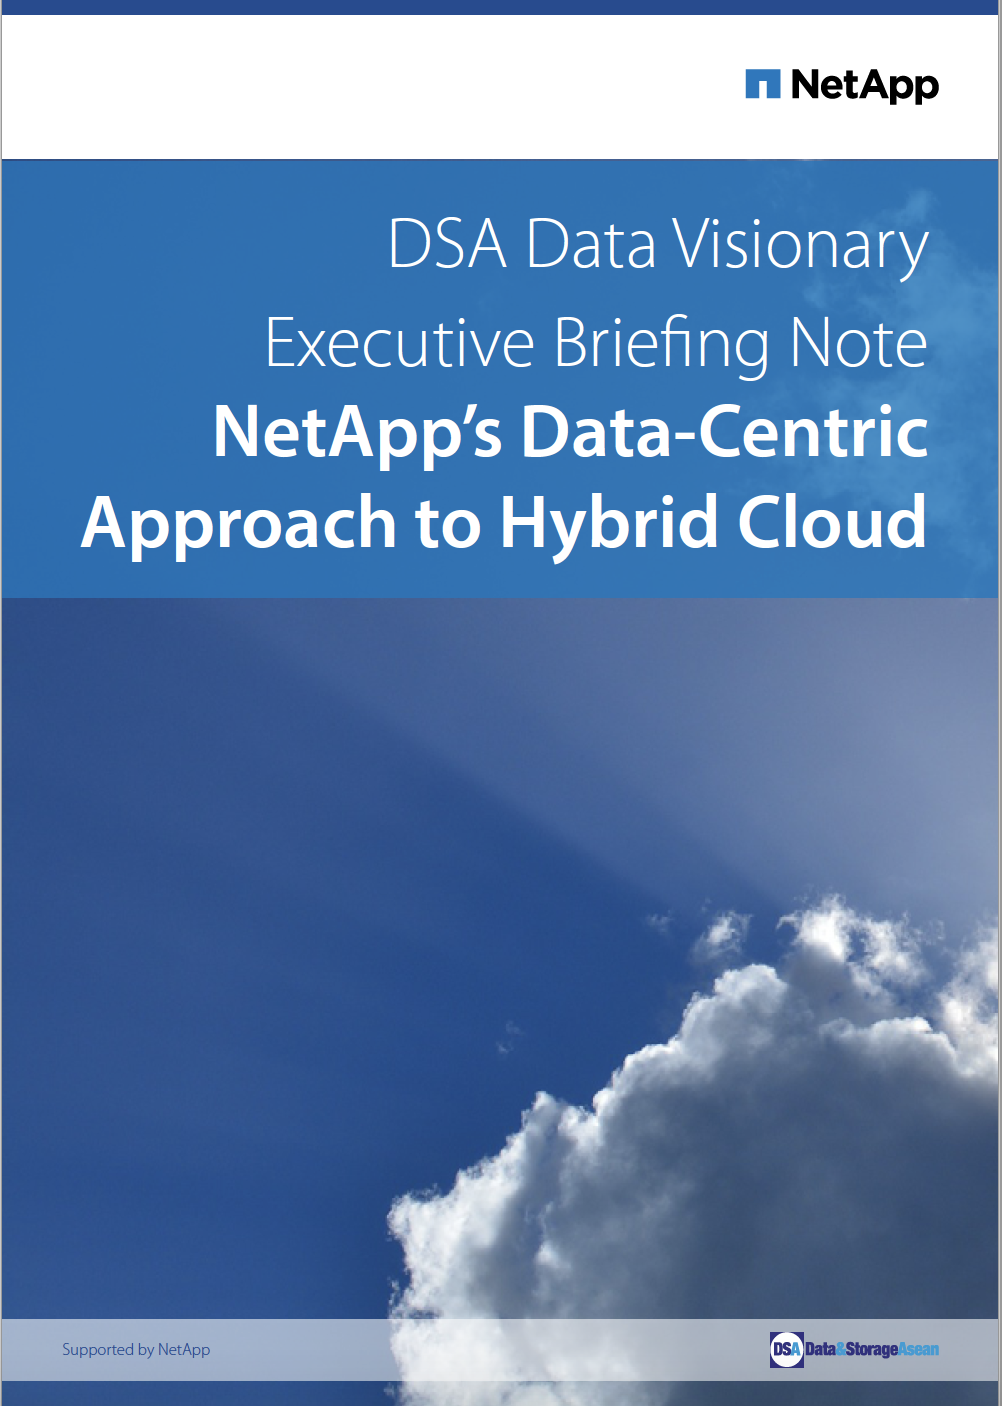 DSA Data Visionary Executive Briefing Note on NetApp's Data-Centric Approach To Hybrid Cloud.pdf